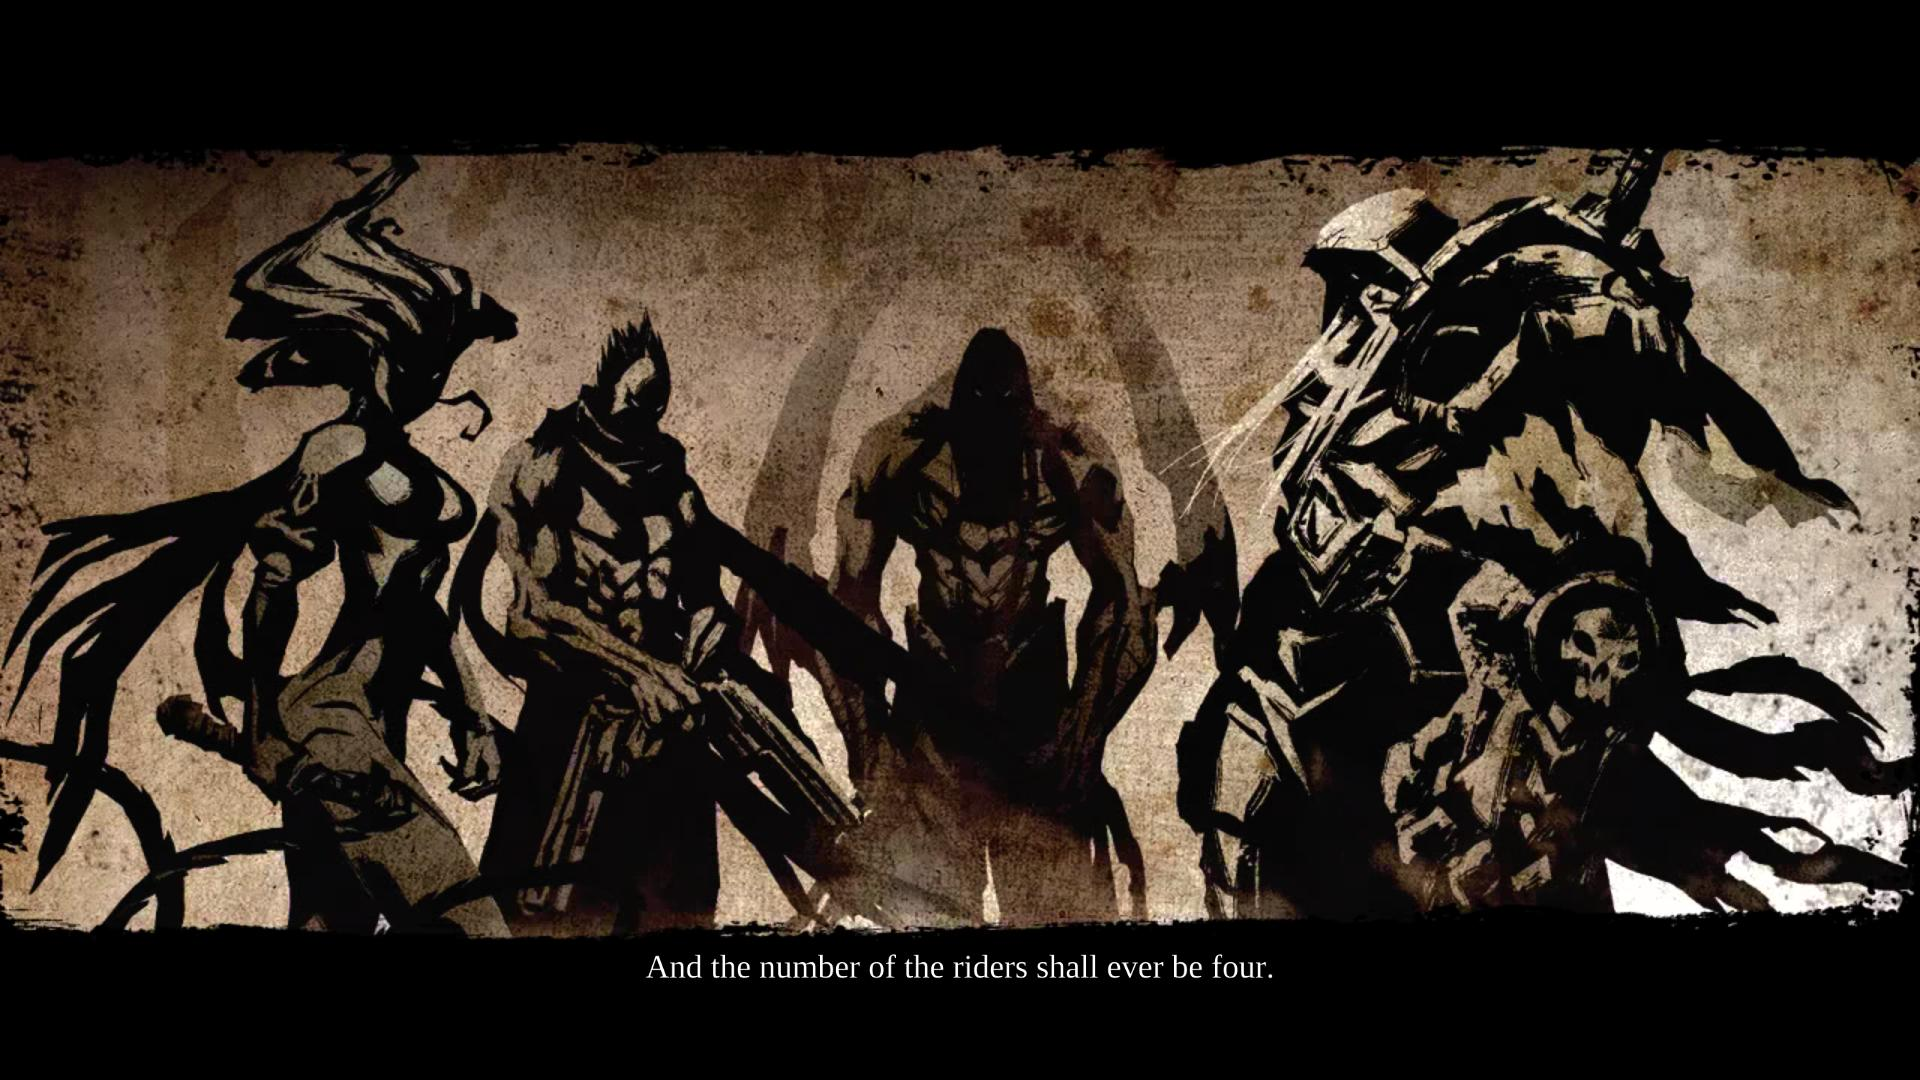 Four Horsemen Of The Apocalypse Wallpaper Darksiders Images Pictures 1920x1080